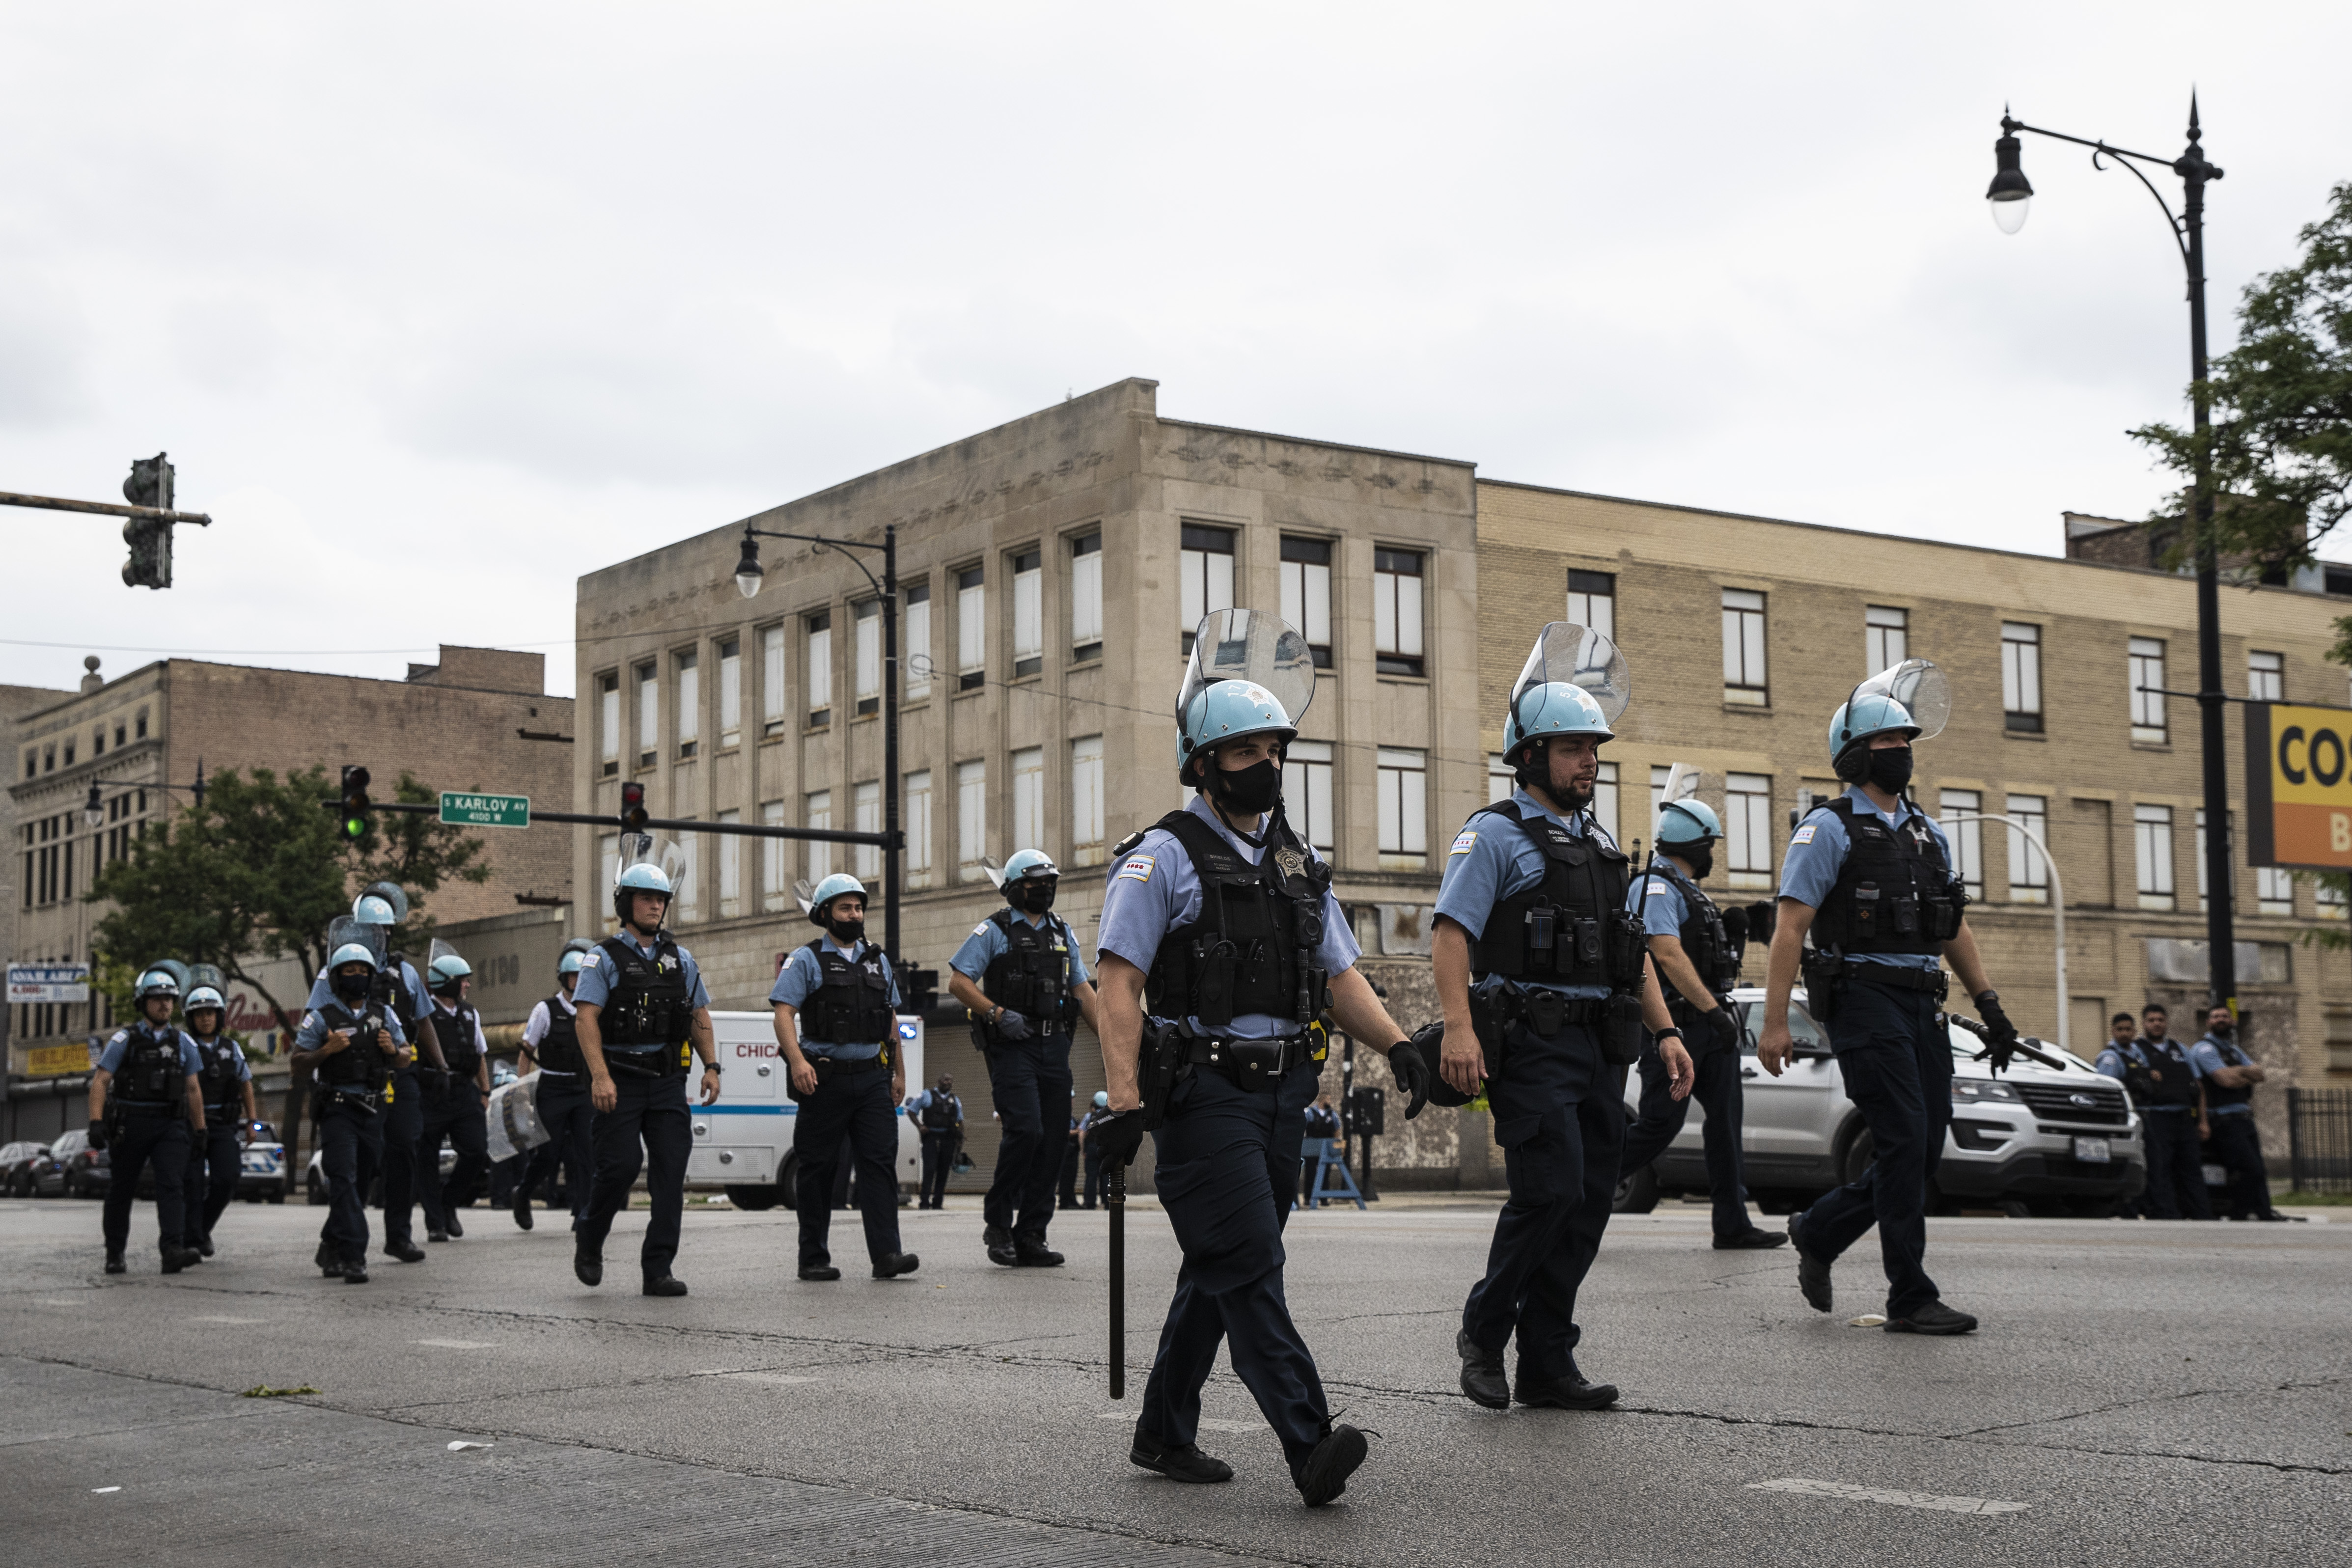 Chicago police officers respond to reports of looting and rioting near West Madison Street and South Karlov Avenue on the West Side, Monday afternoon, Aug. 10, 2020.